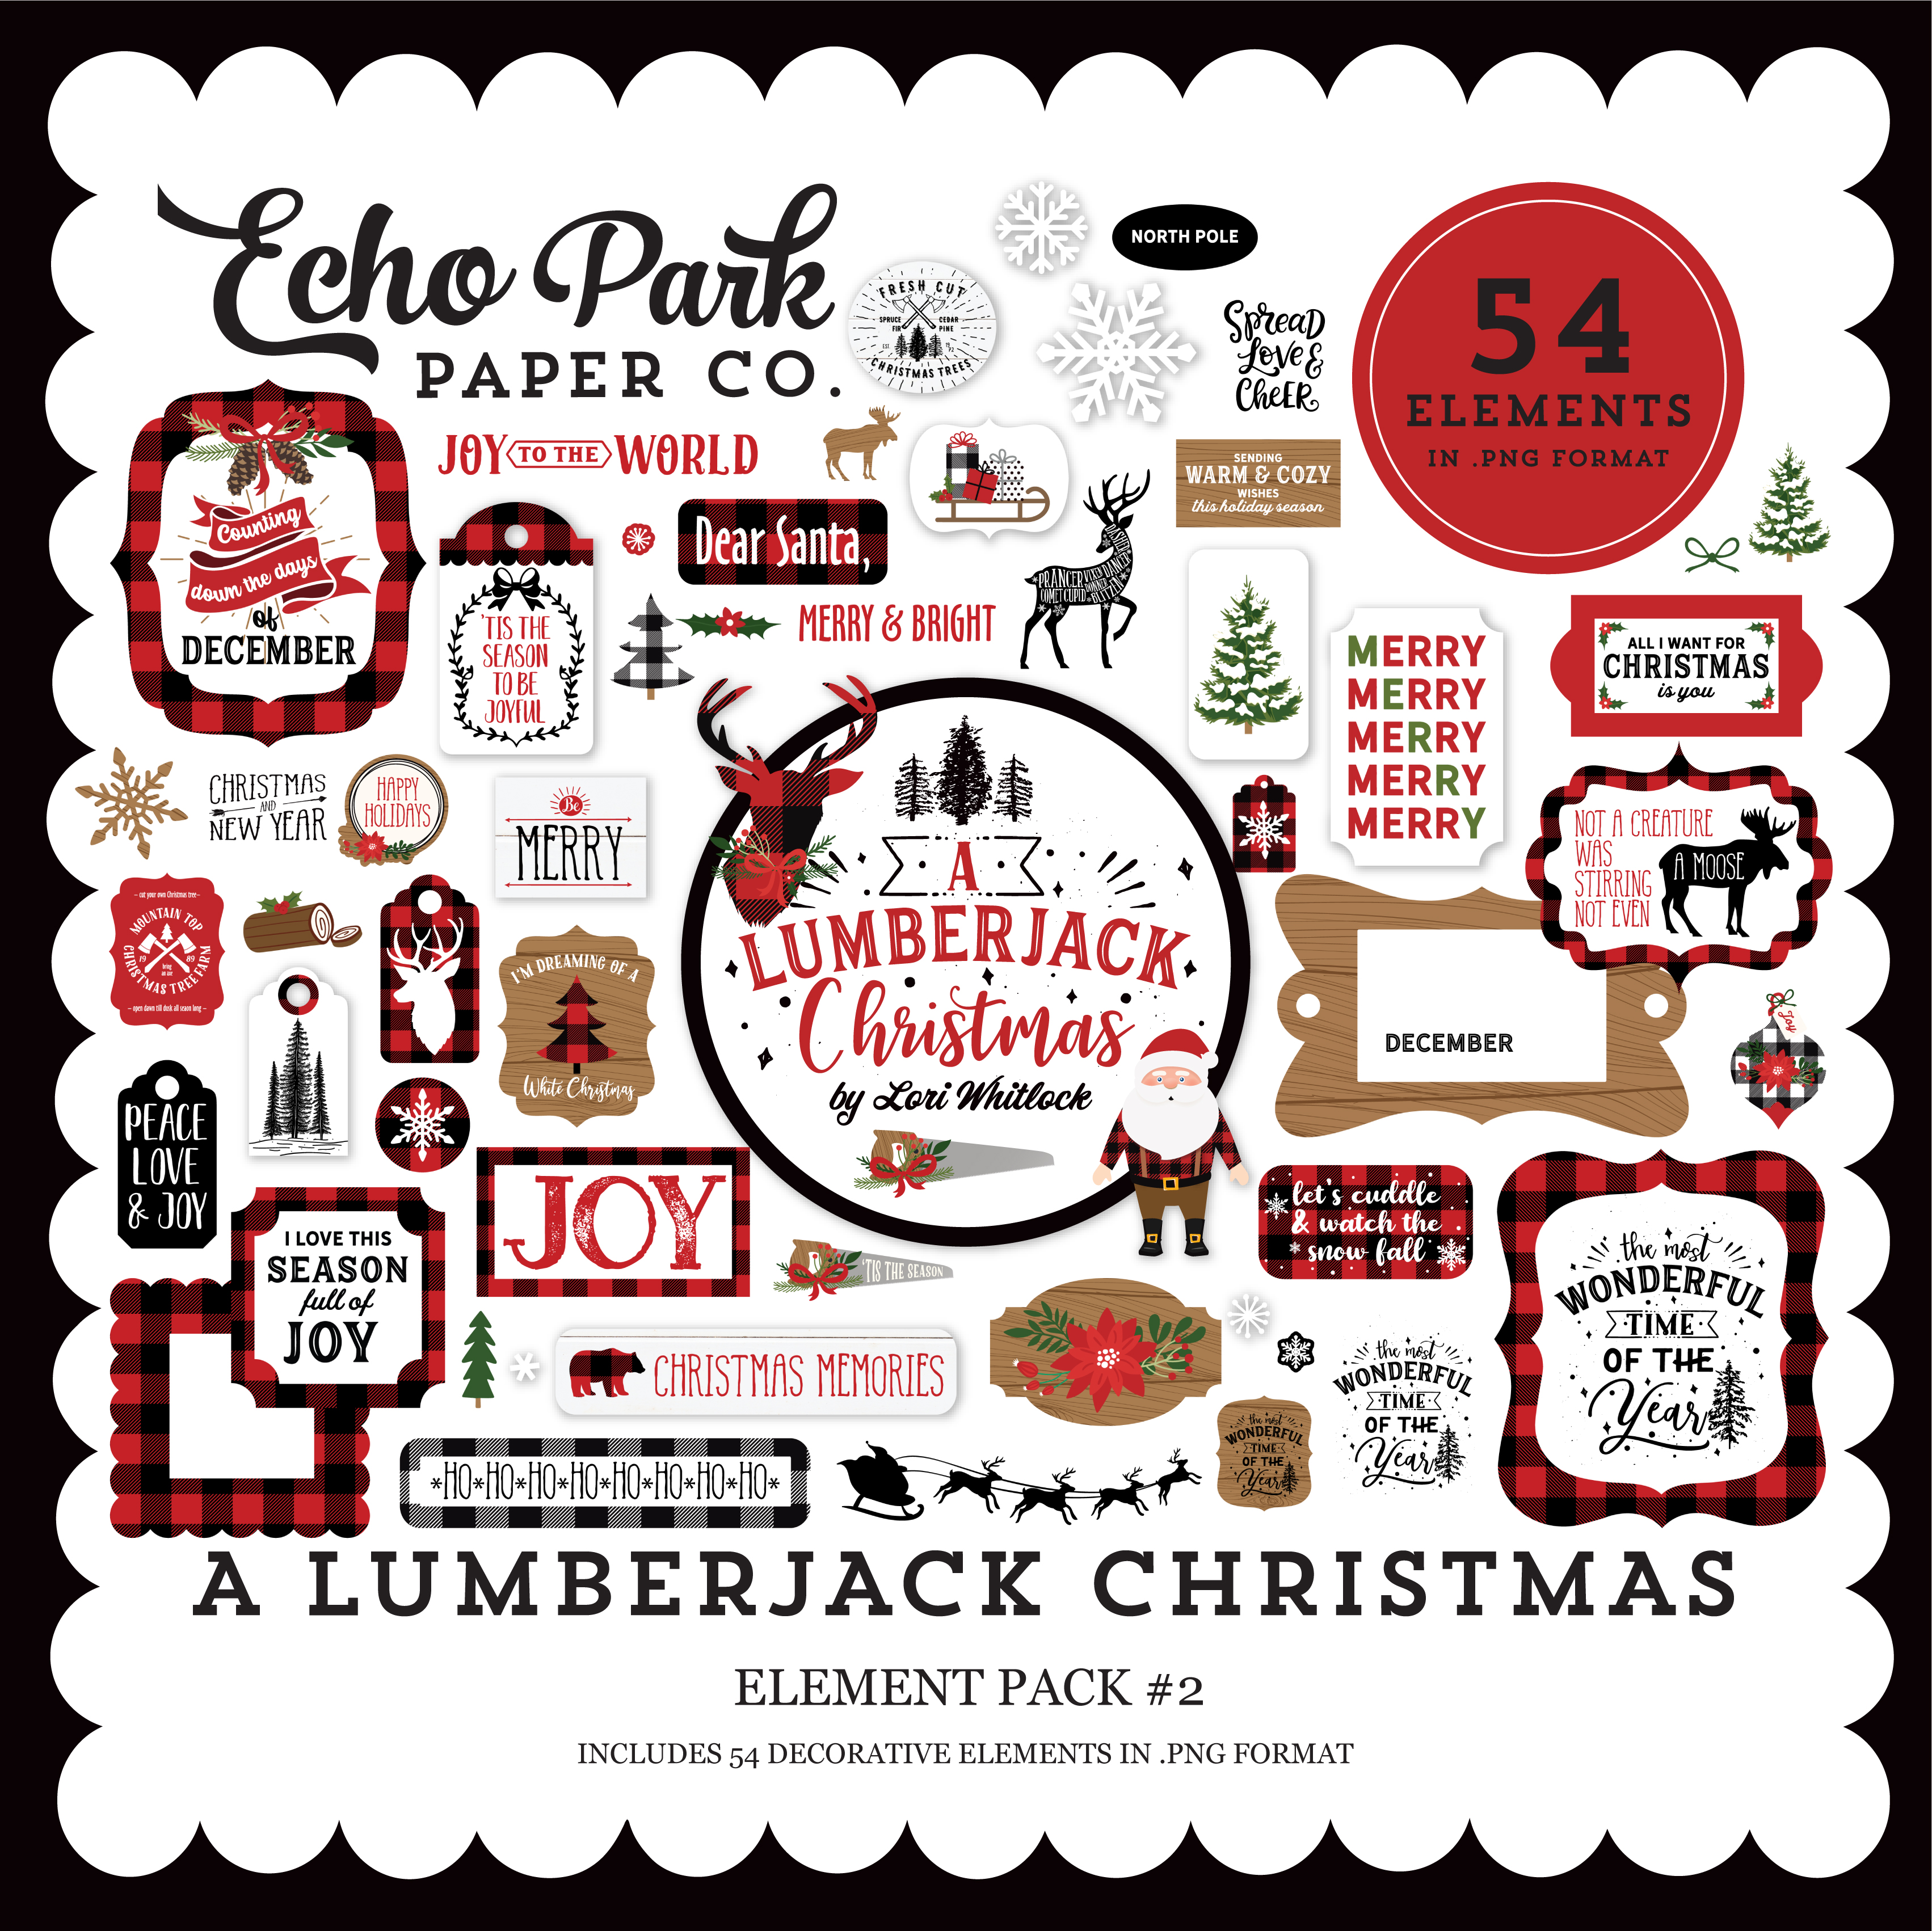 A Lumberjack Christmas Element Pack #2